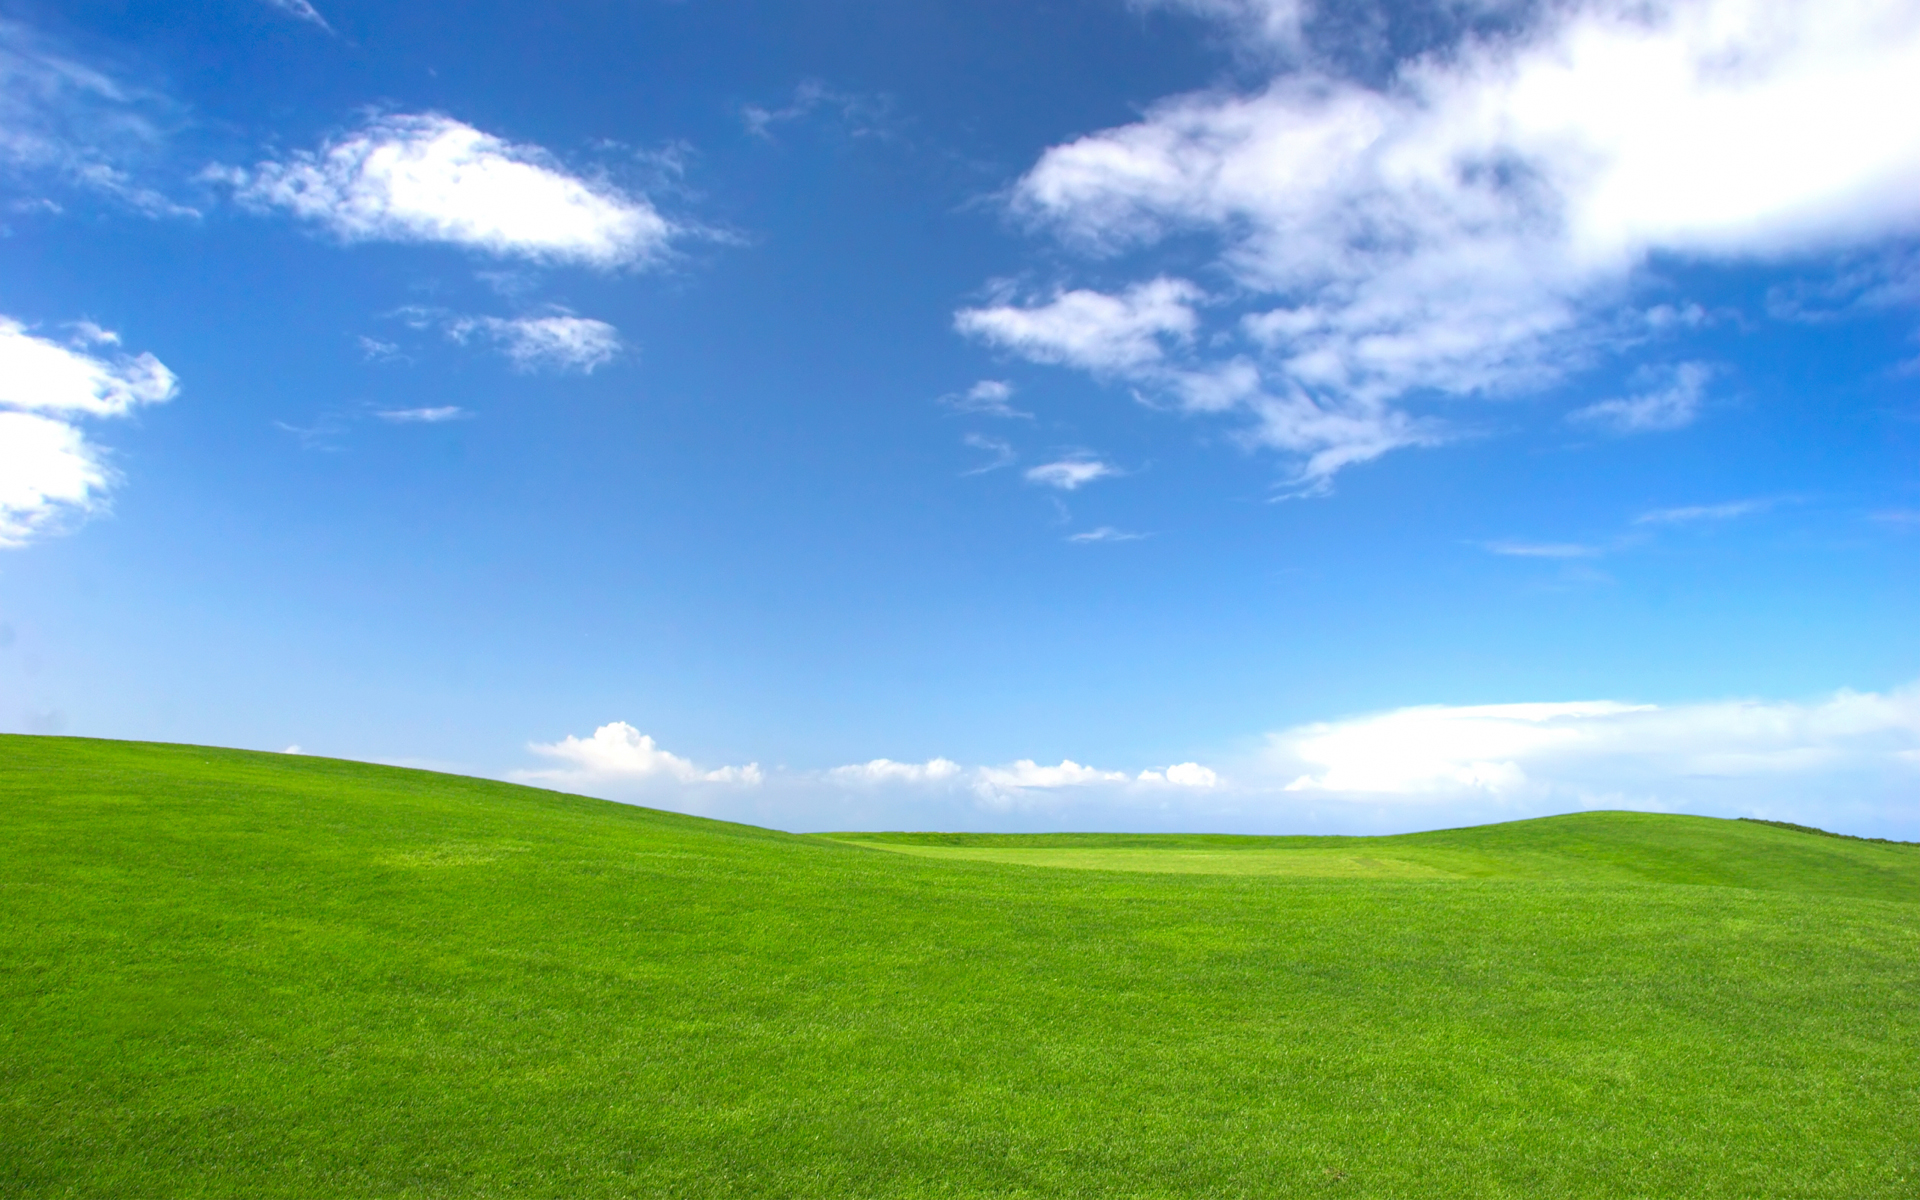 Free Download Remember The Windows Xp Background With The Green Hill And Blue Sky 1920x1200 For Your Desktop Mobile Tablet Explore 44 Windows Hill Wallpaper Windows Xp Original Wallpaper